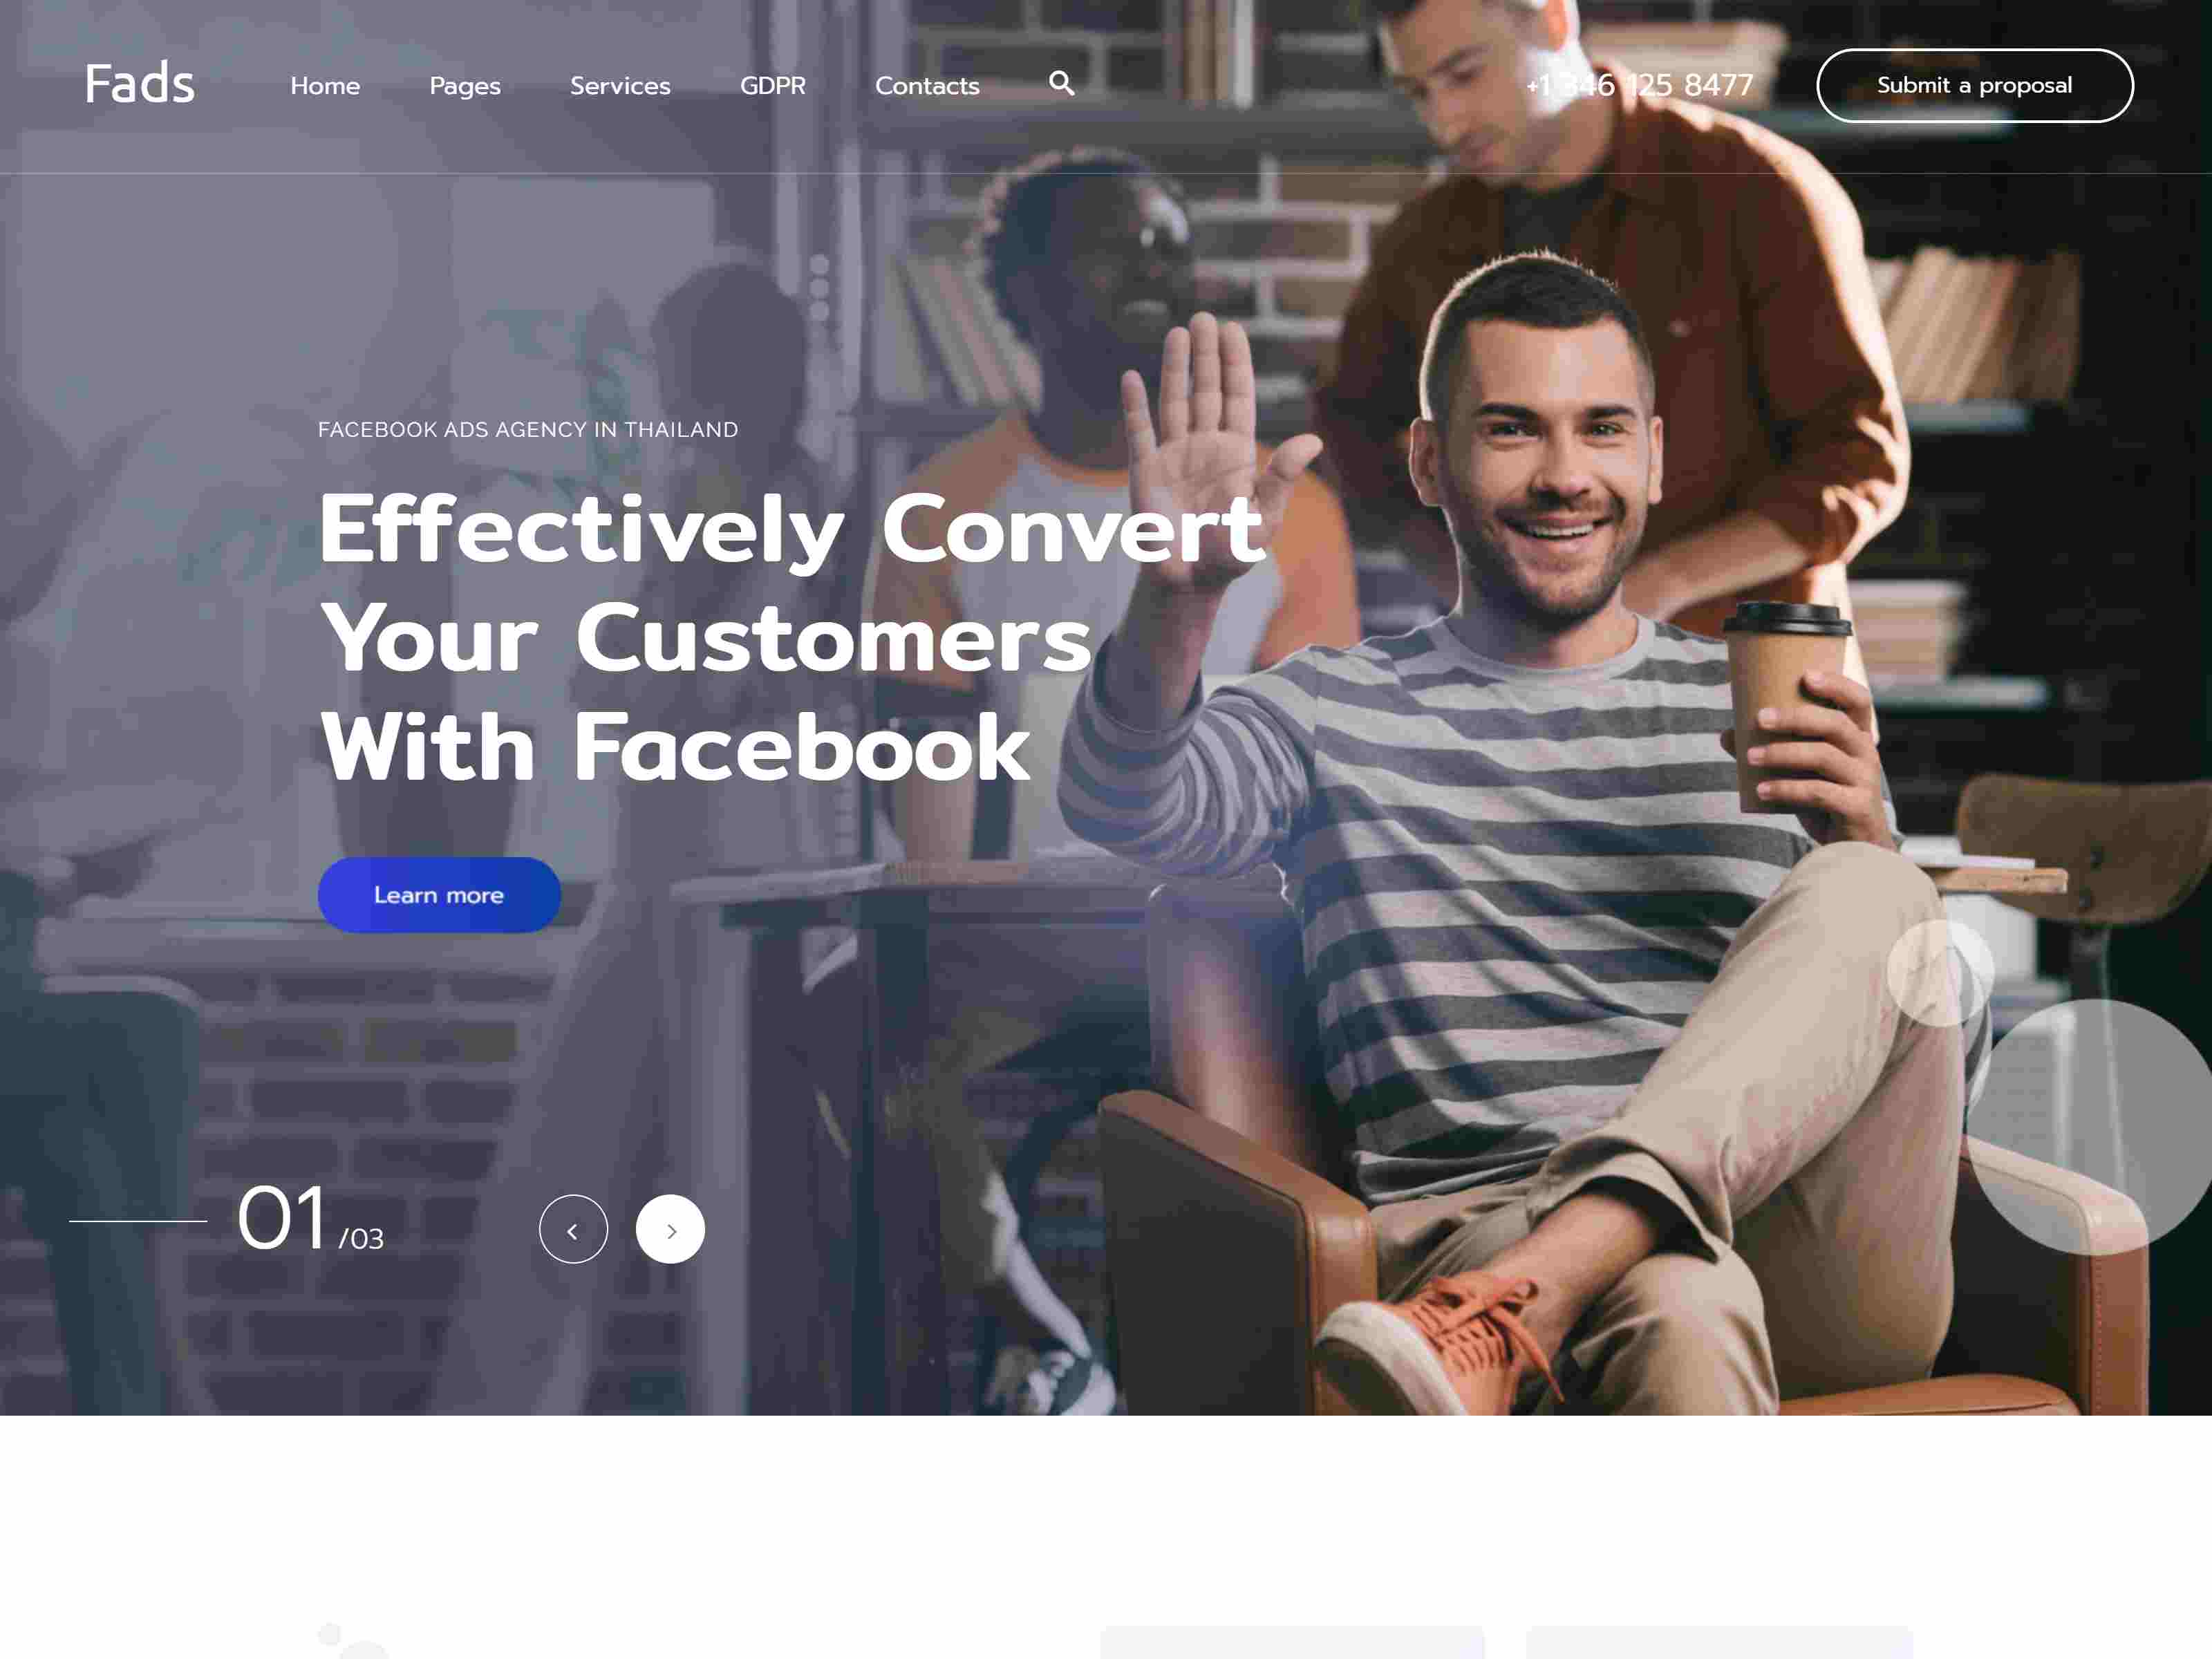 Fads - Business Agency WordPress Theme